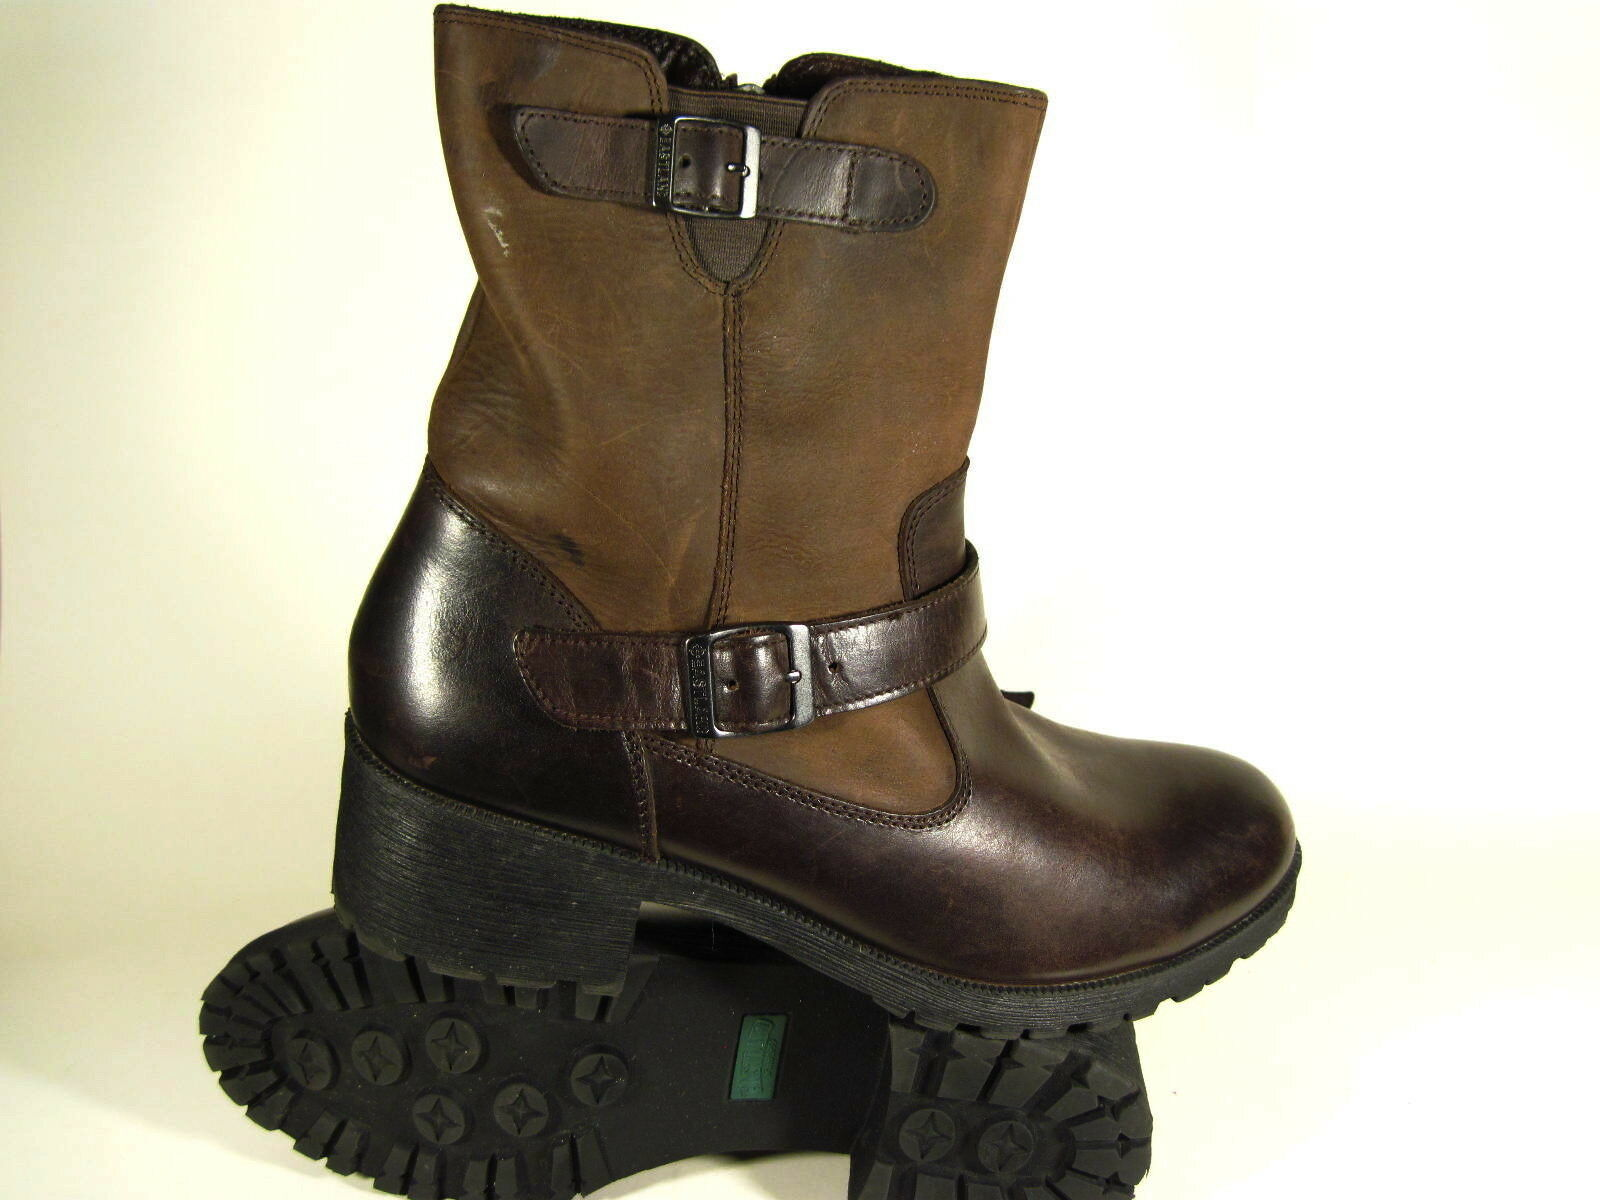 EASTLAND WOMEN MOTOCYCLE BOOTS BROWN SIZE SIZE SIZE 10EASTLAND BELMONT WOMEN BOOT     001 132427